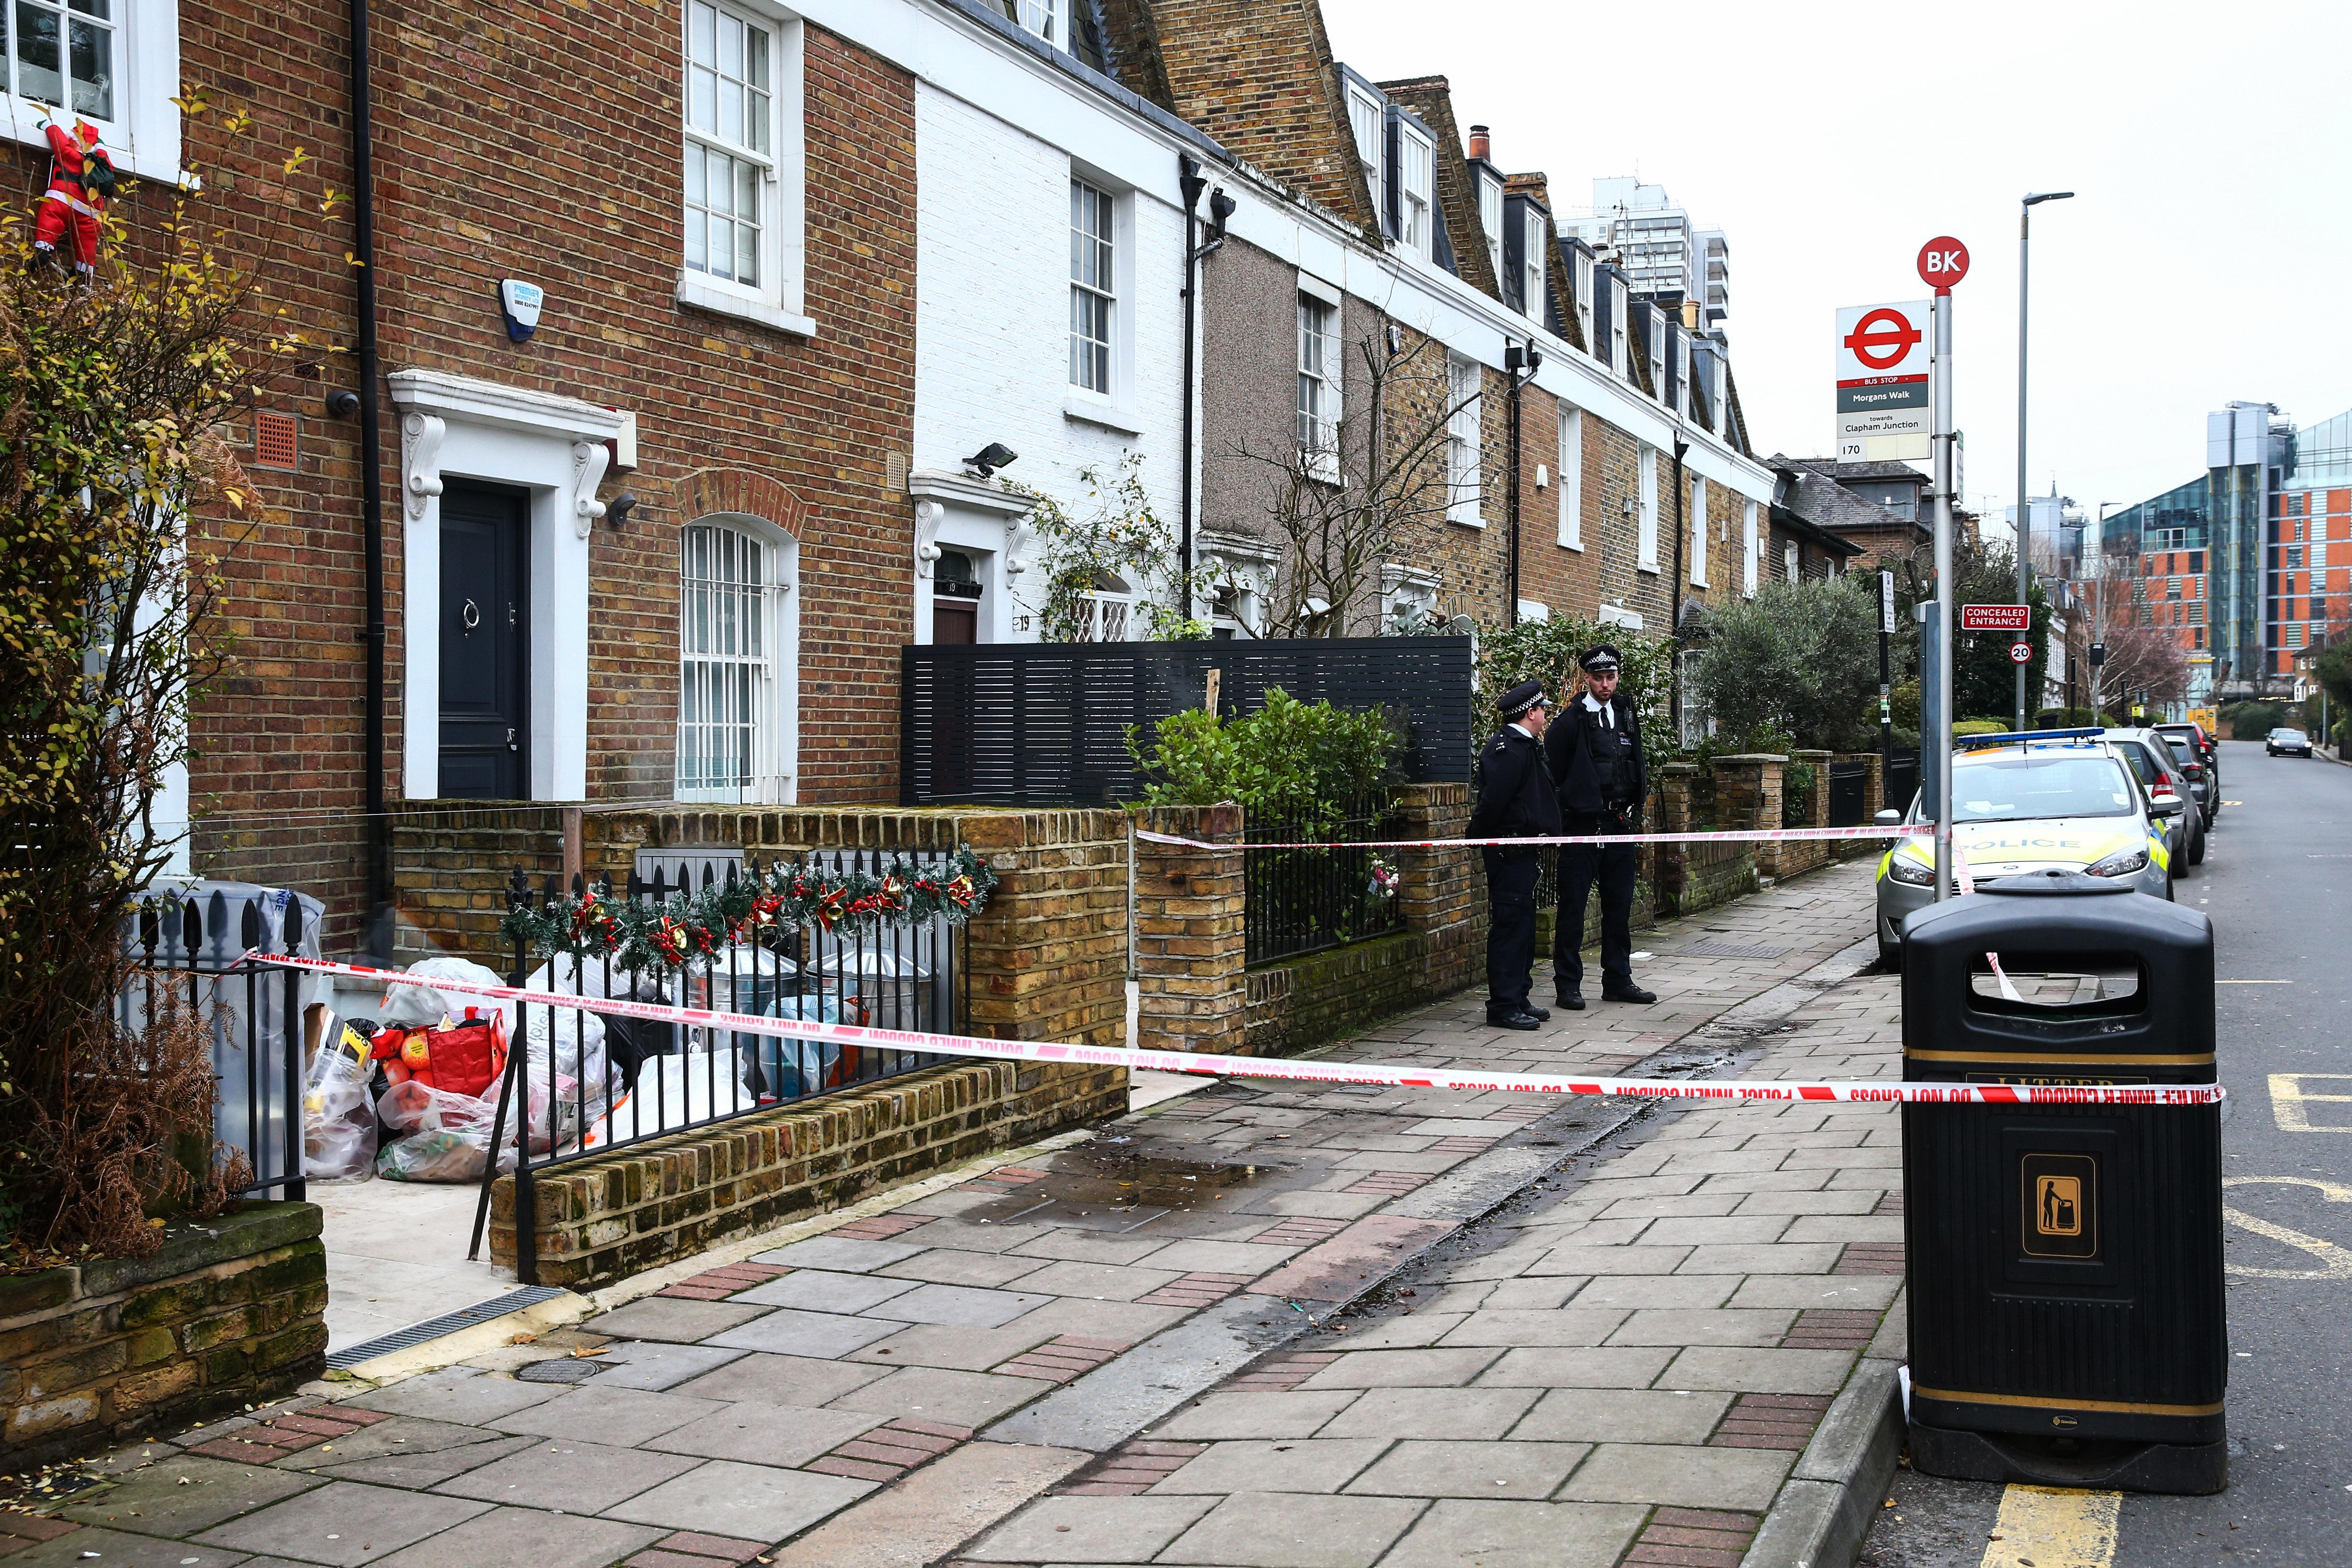 LONDON, ENGLAND - DECEMBER 27: Police stand outside the crime scene where Flamur Beqiri, 36, a father of one, was murdered on December 27, 2019 in south-west London, England. Beqiri was shot dead outside his home on Battersea Church Road on Christmas Eve. The Swedish national is the brother of former Real Housewives of Cheshire star Misse Beqiri. (Photo by Hollie Adams/Getty Images)